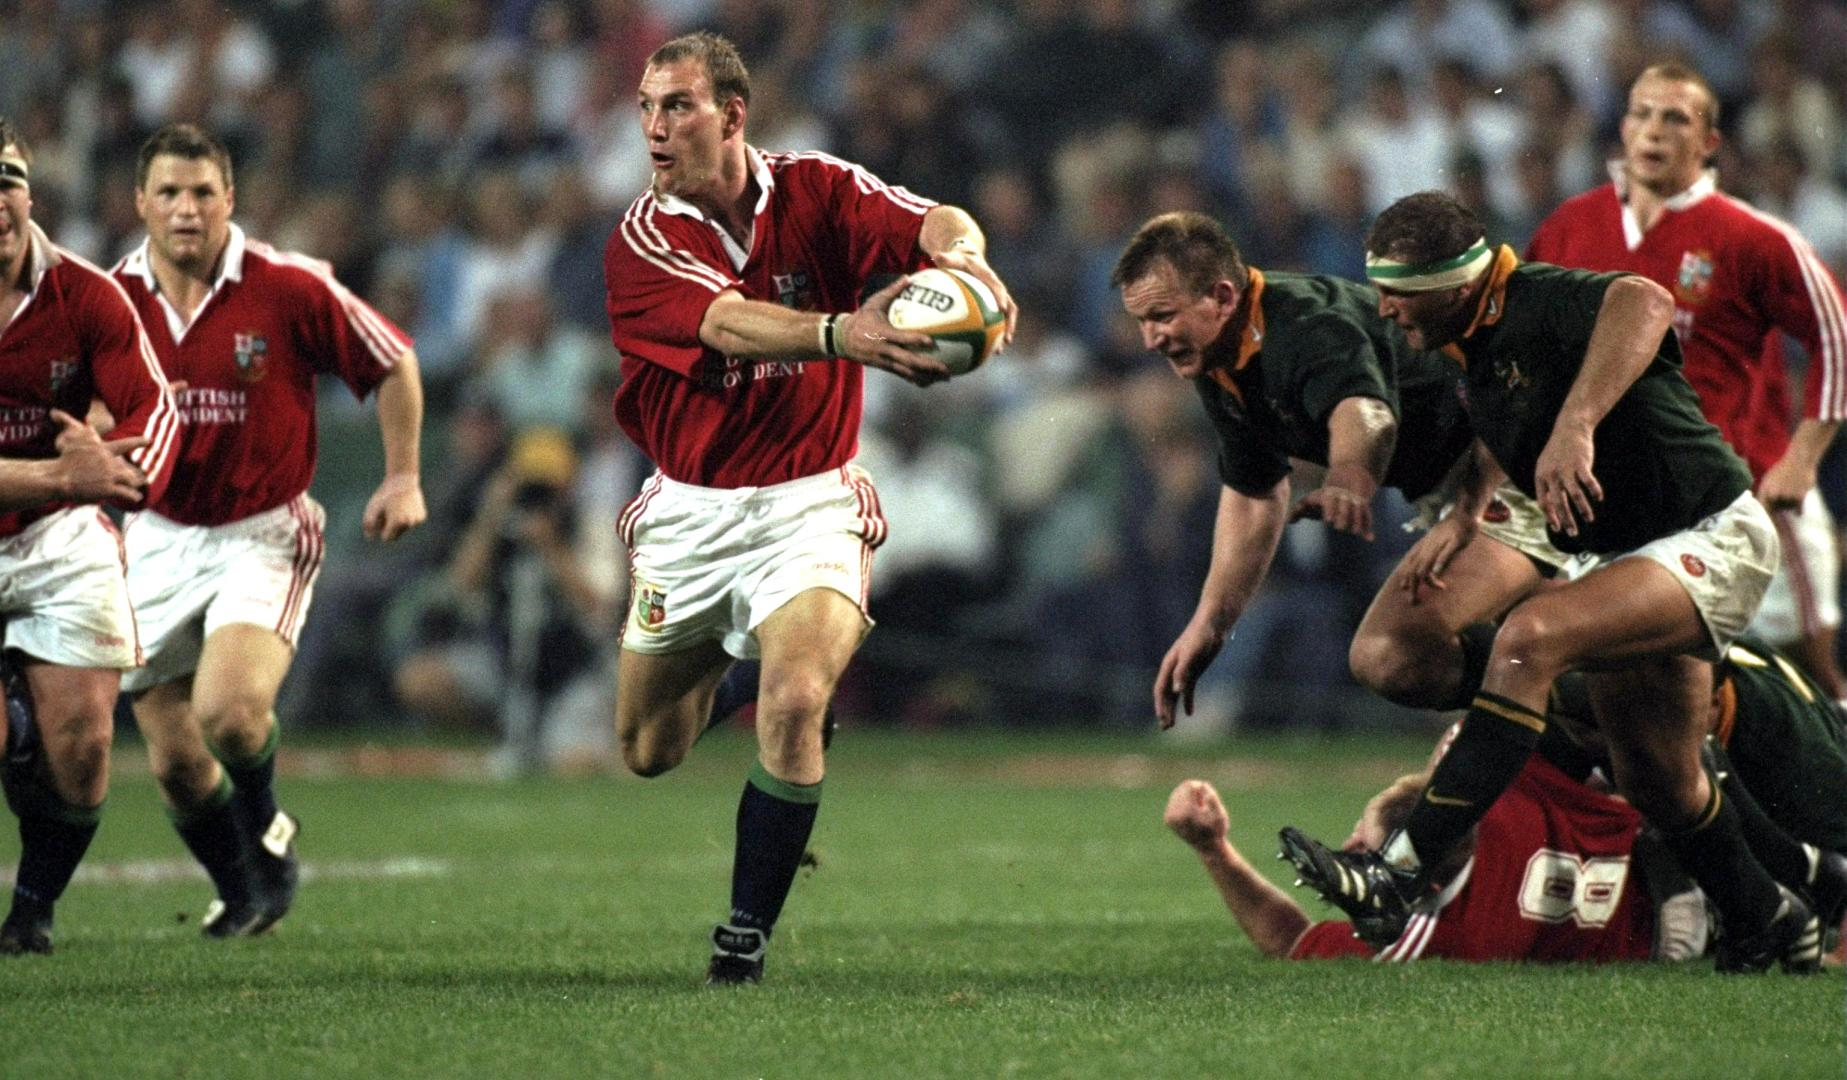 Dallaglio urges players not to look too far ahead